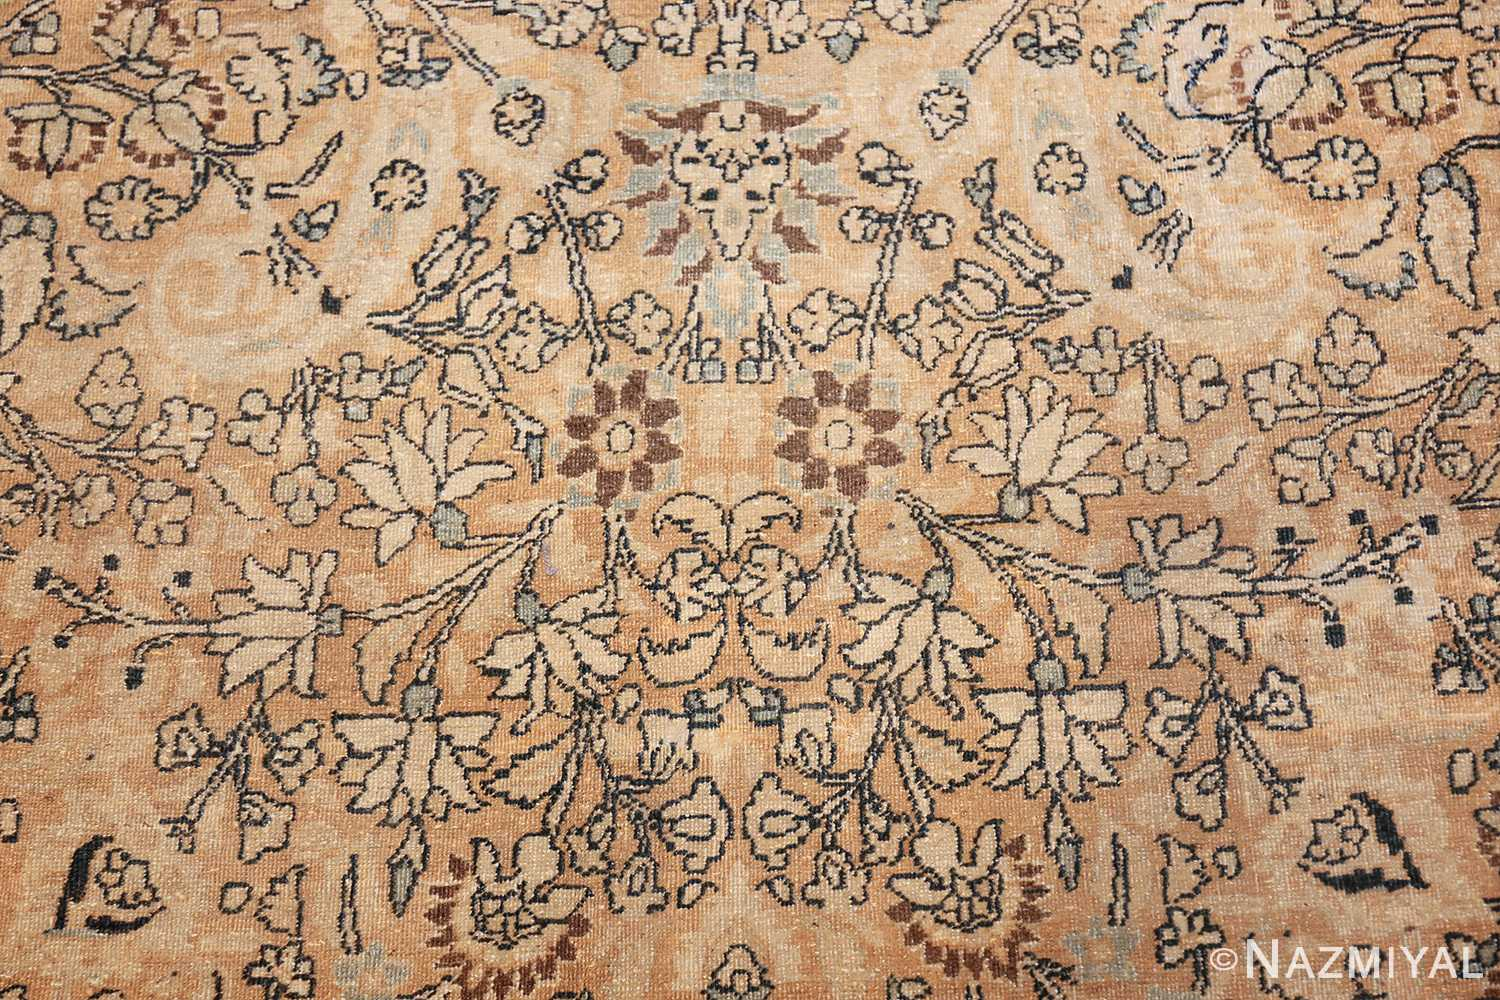 oversize neutral earth tone color persian khorassan rug 49427 ivory Nazmiyal